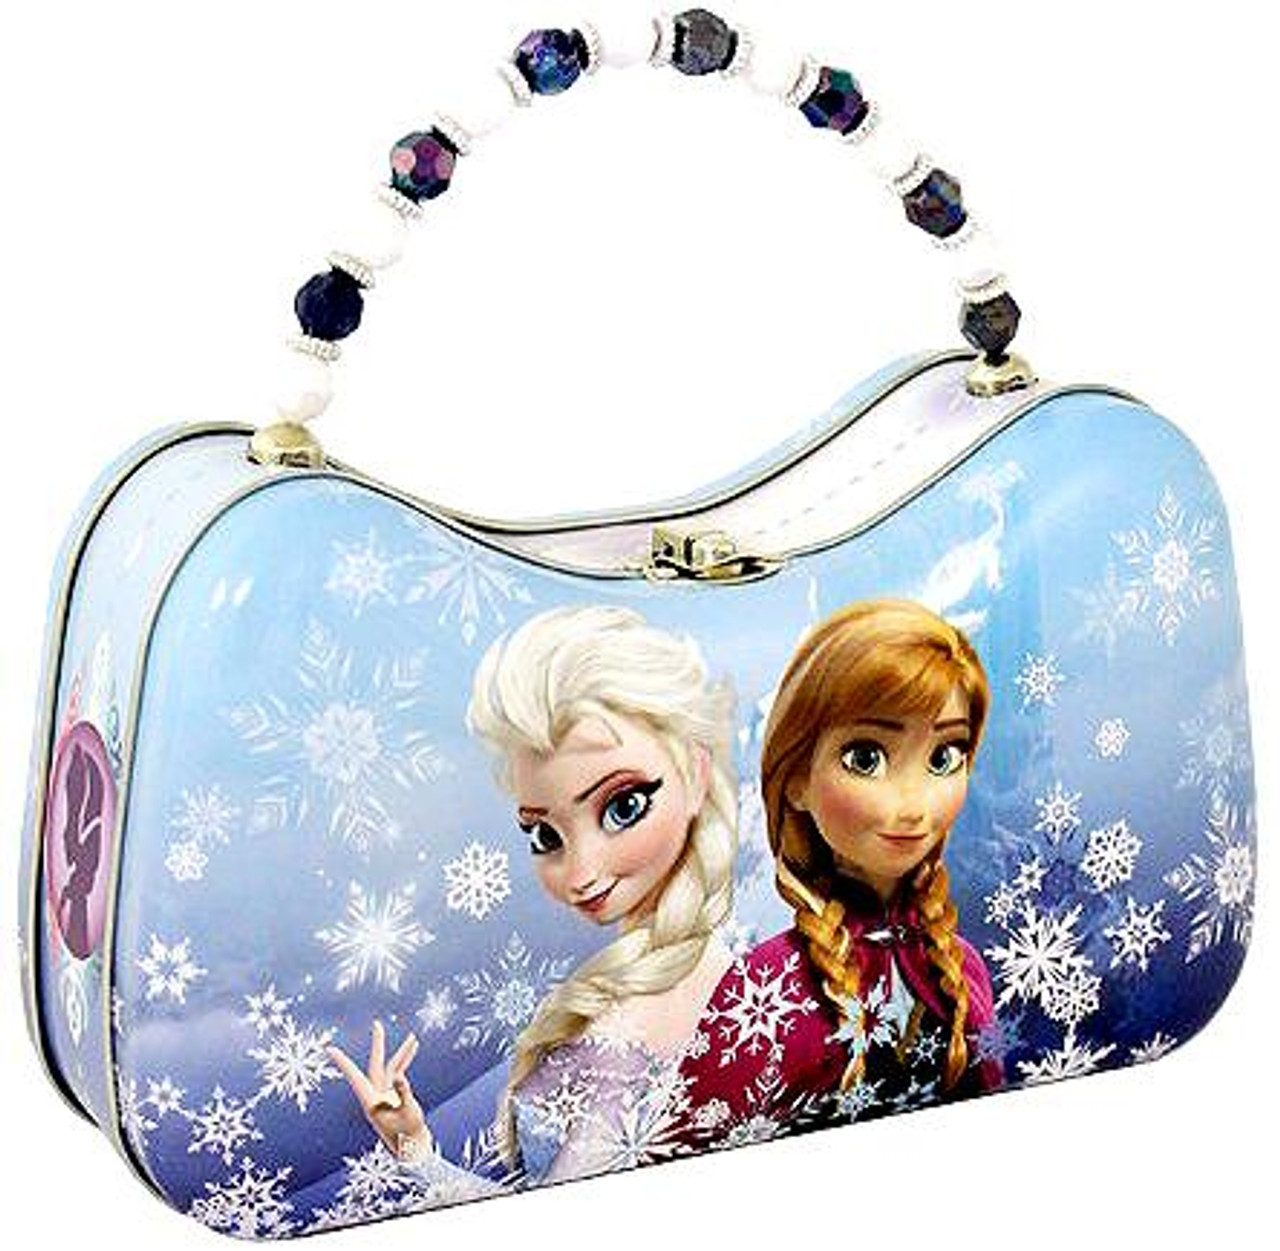 Disney Frozen Anna & Elsa Scoop Tin Purse Accessory [Random Cover Design]